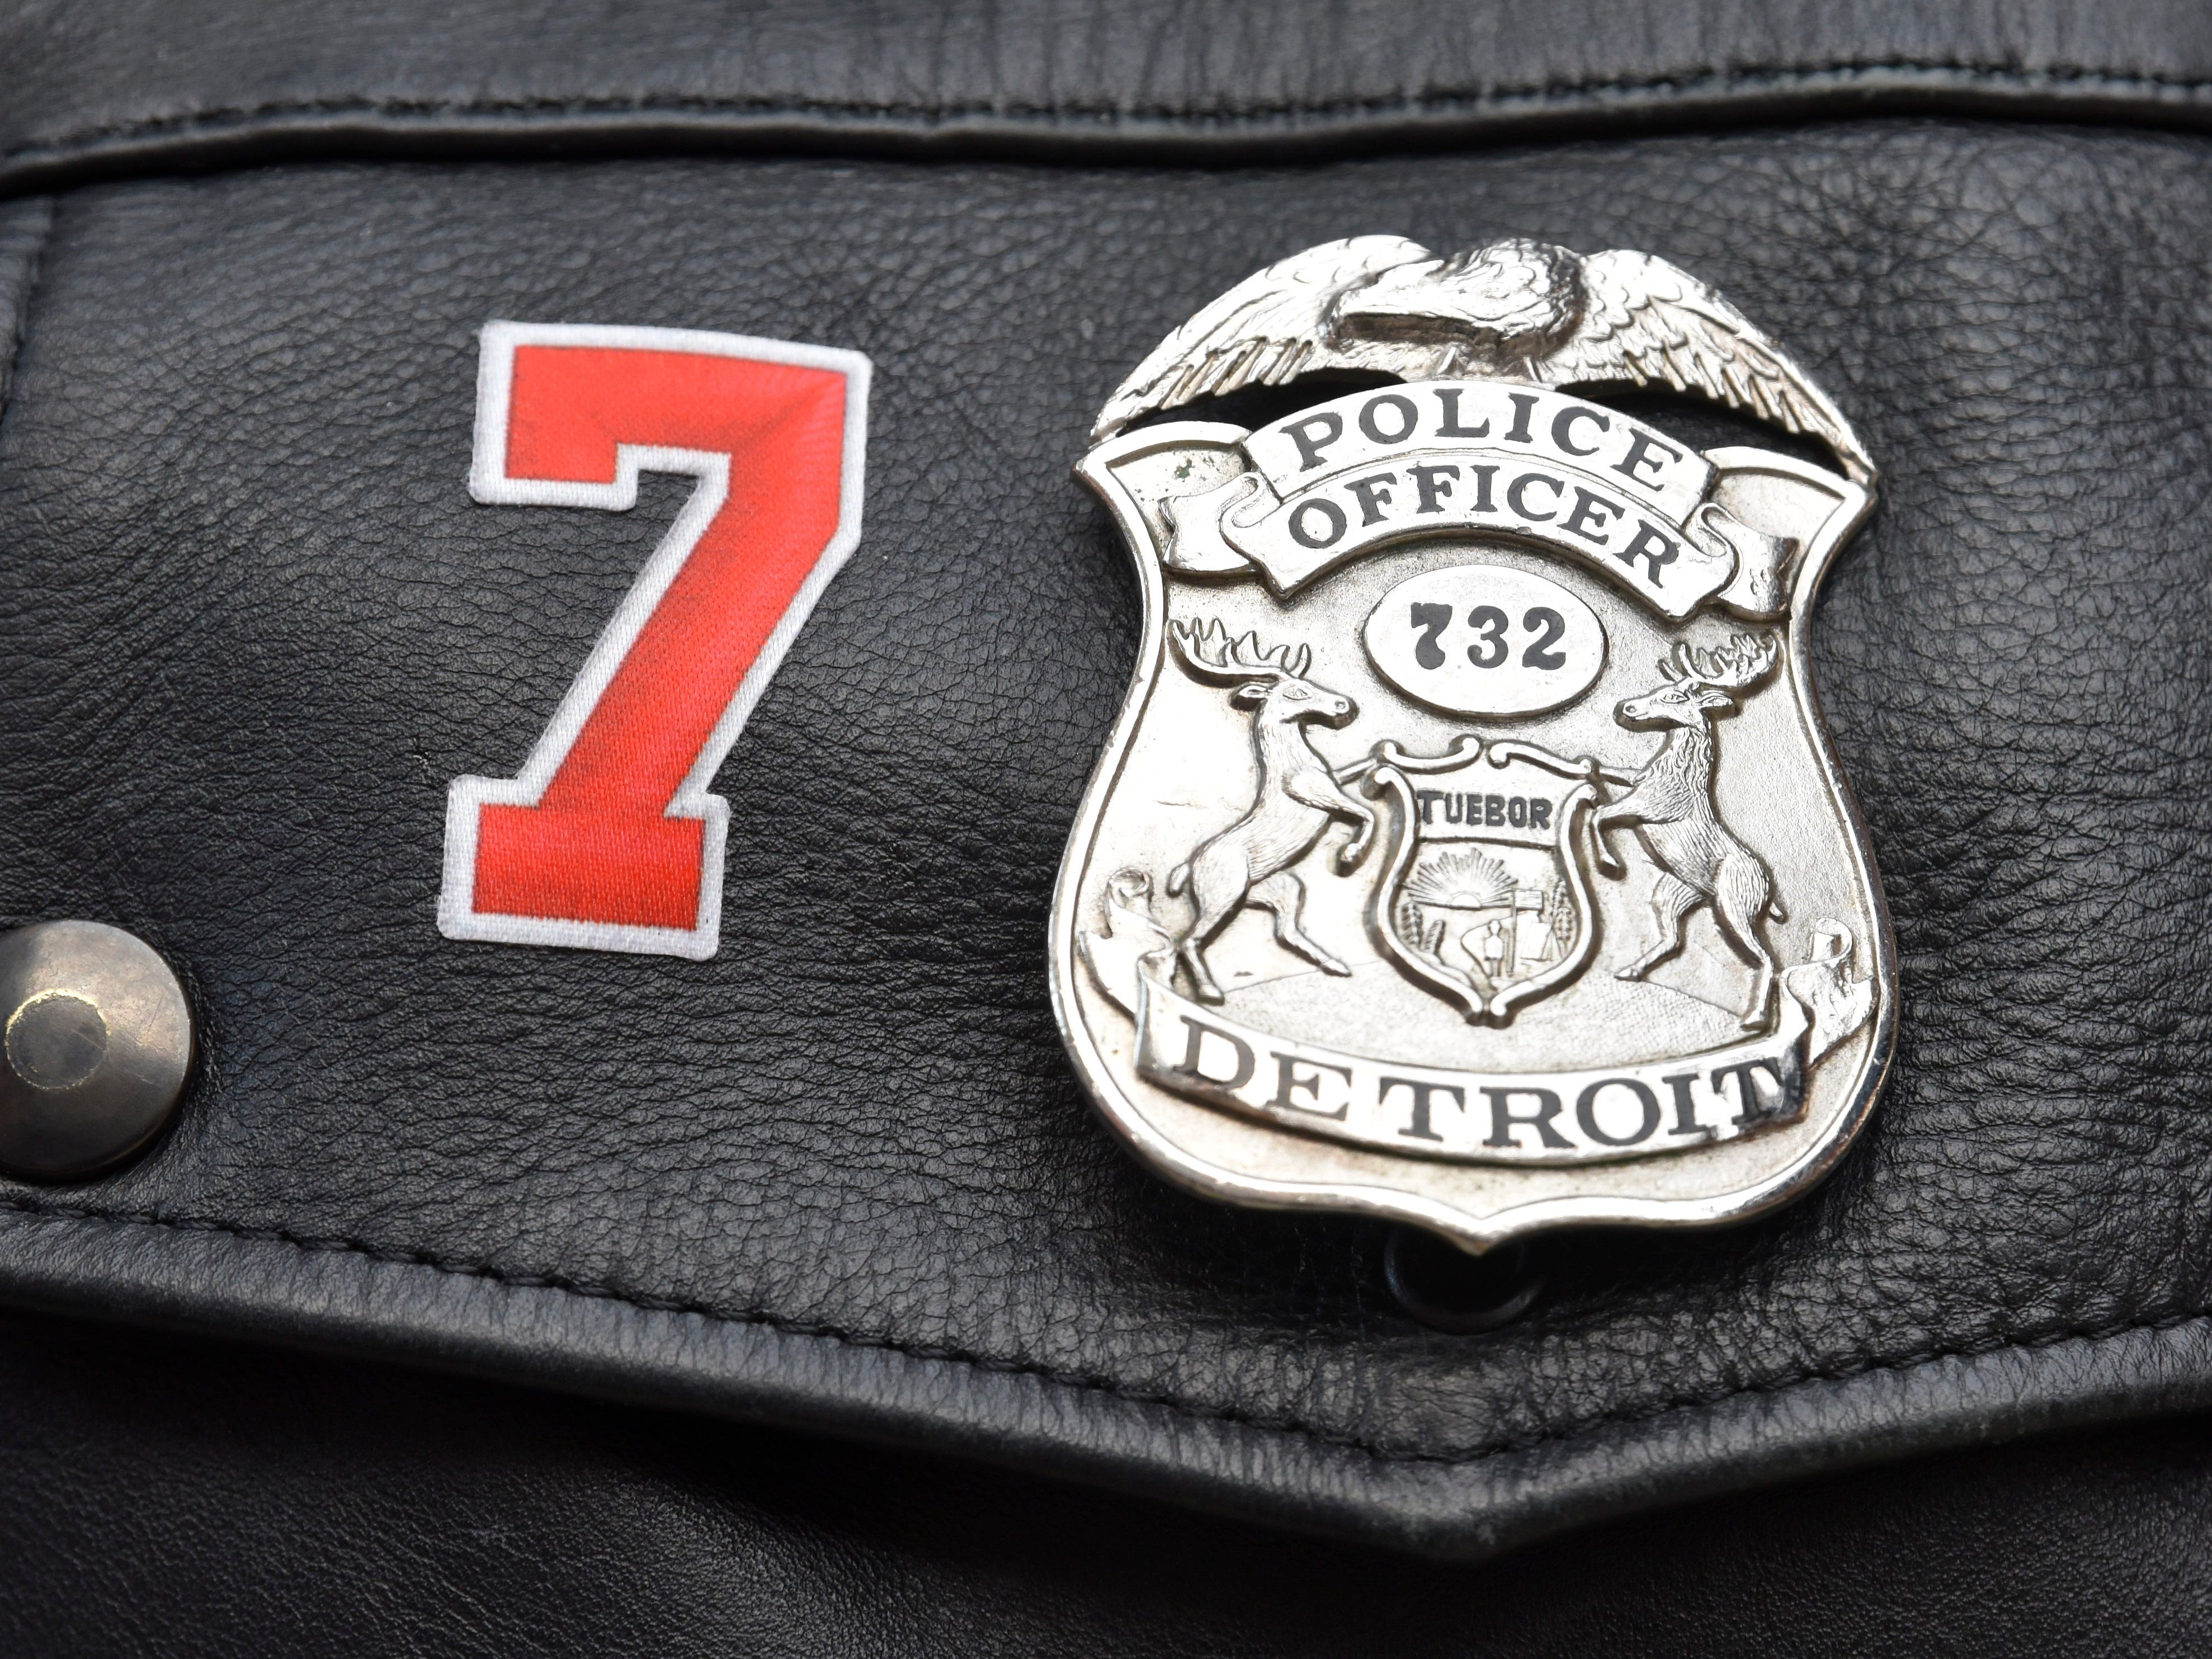 Detroit Police Officer Chris Meredyk wears Ted Lindsay's #7 near his badge as he works the event. Meredyk is captain of the Detroit Police Hockey Team.